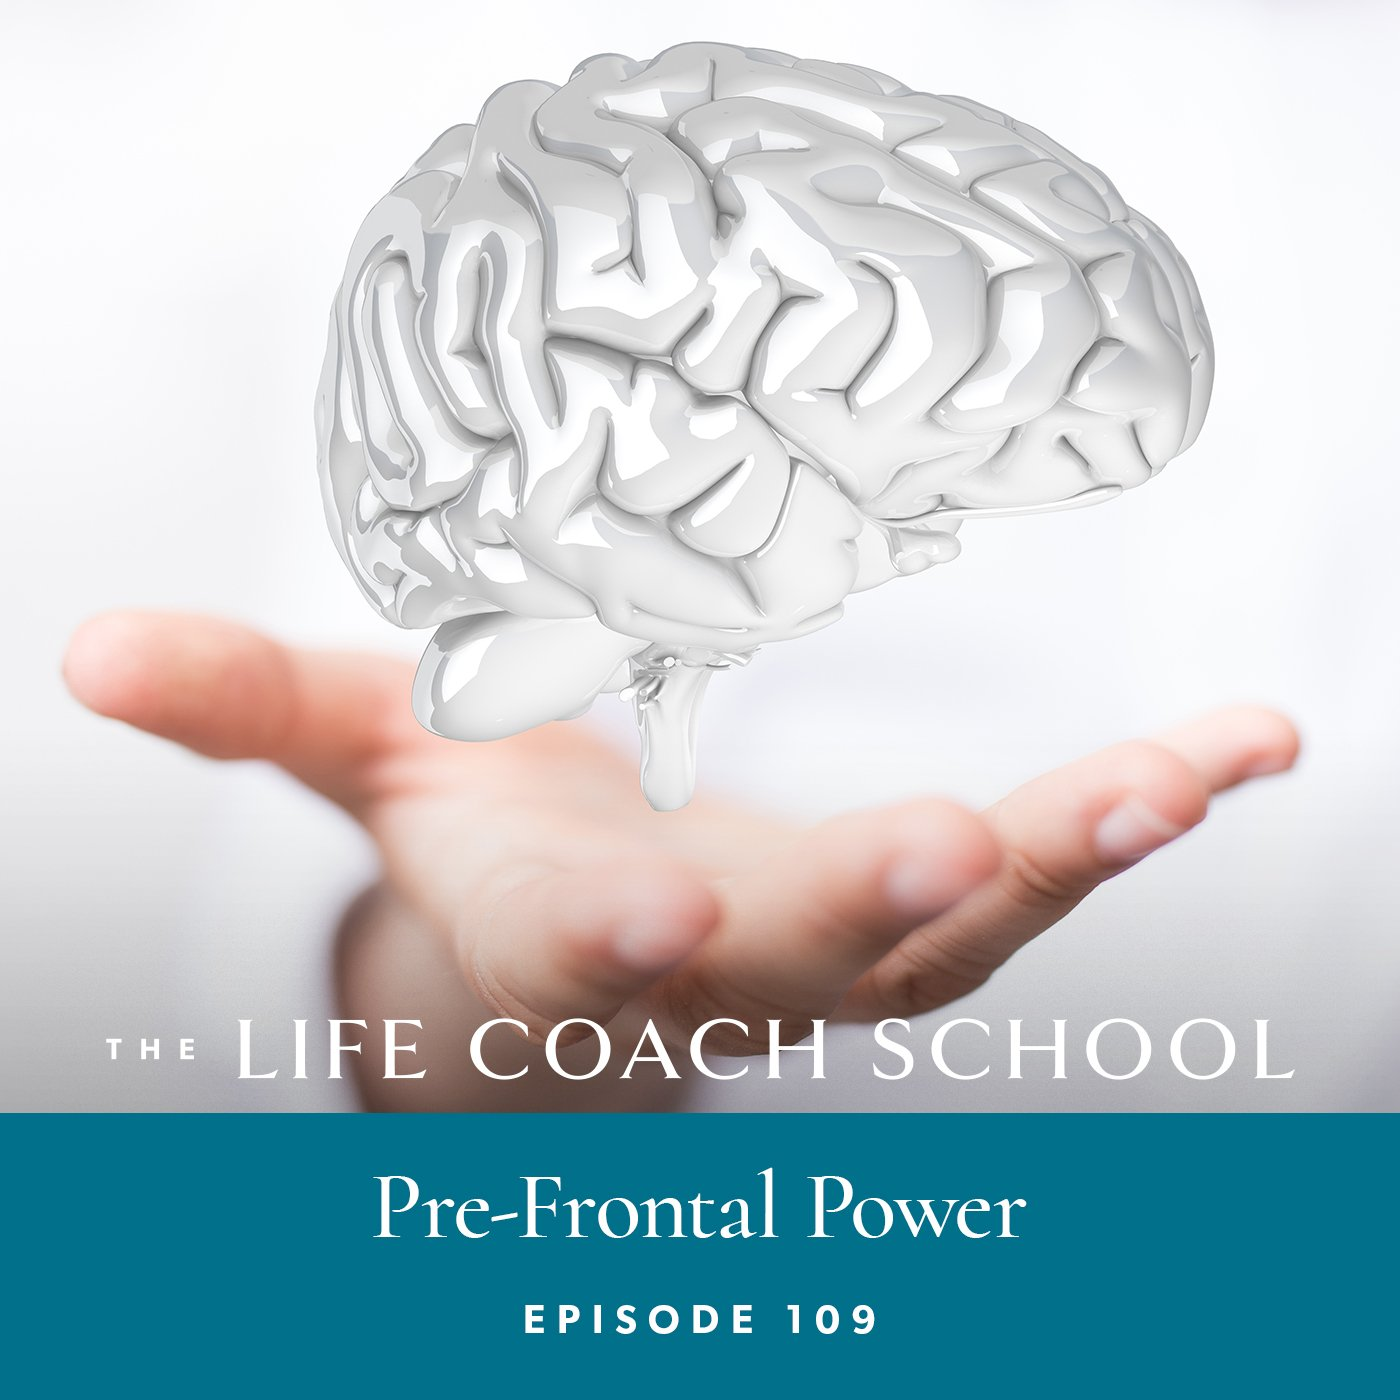 The Life Coach School Podcast with Brooke Castillo | Episode 109 | Pre-Frontal Power